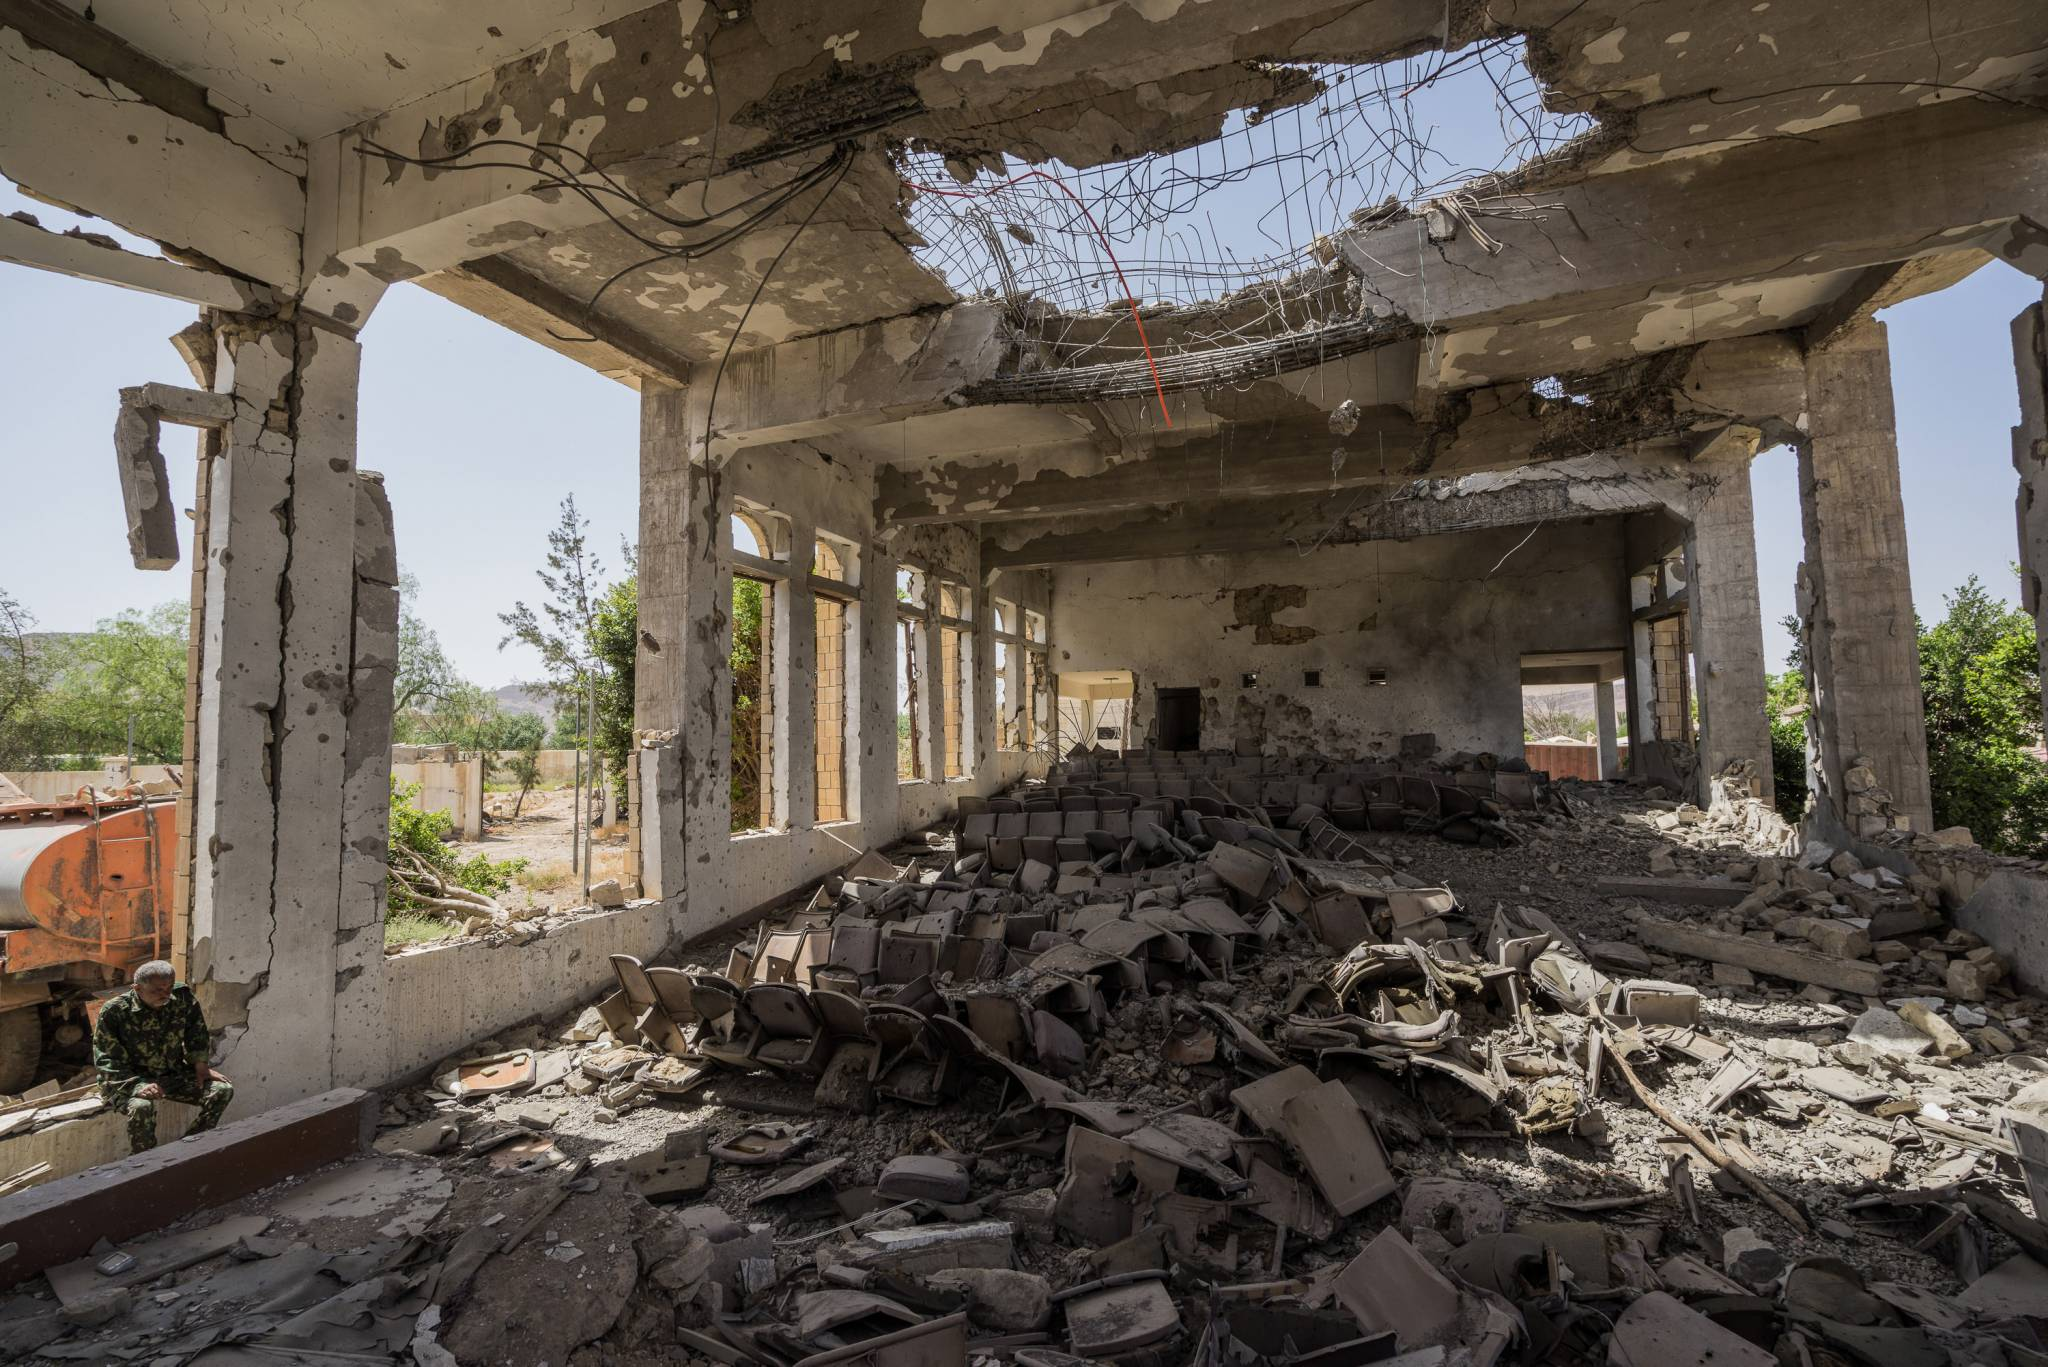 SAADA CITY, SAADA GOVERNORATE, YEMEN. 24 APRIL 2017.   A military guard sits in the former Assembly Hall of the Governor of Saada that now lies in ruins following multiple airstrikes in April 2015.